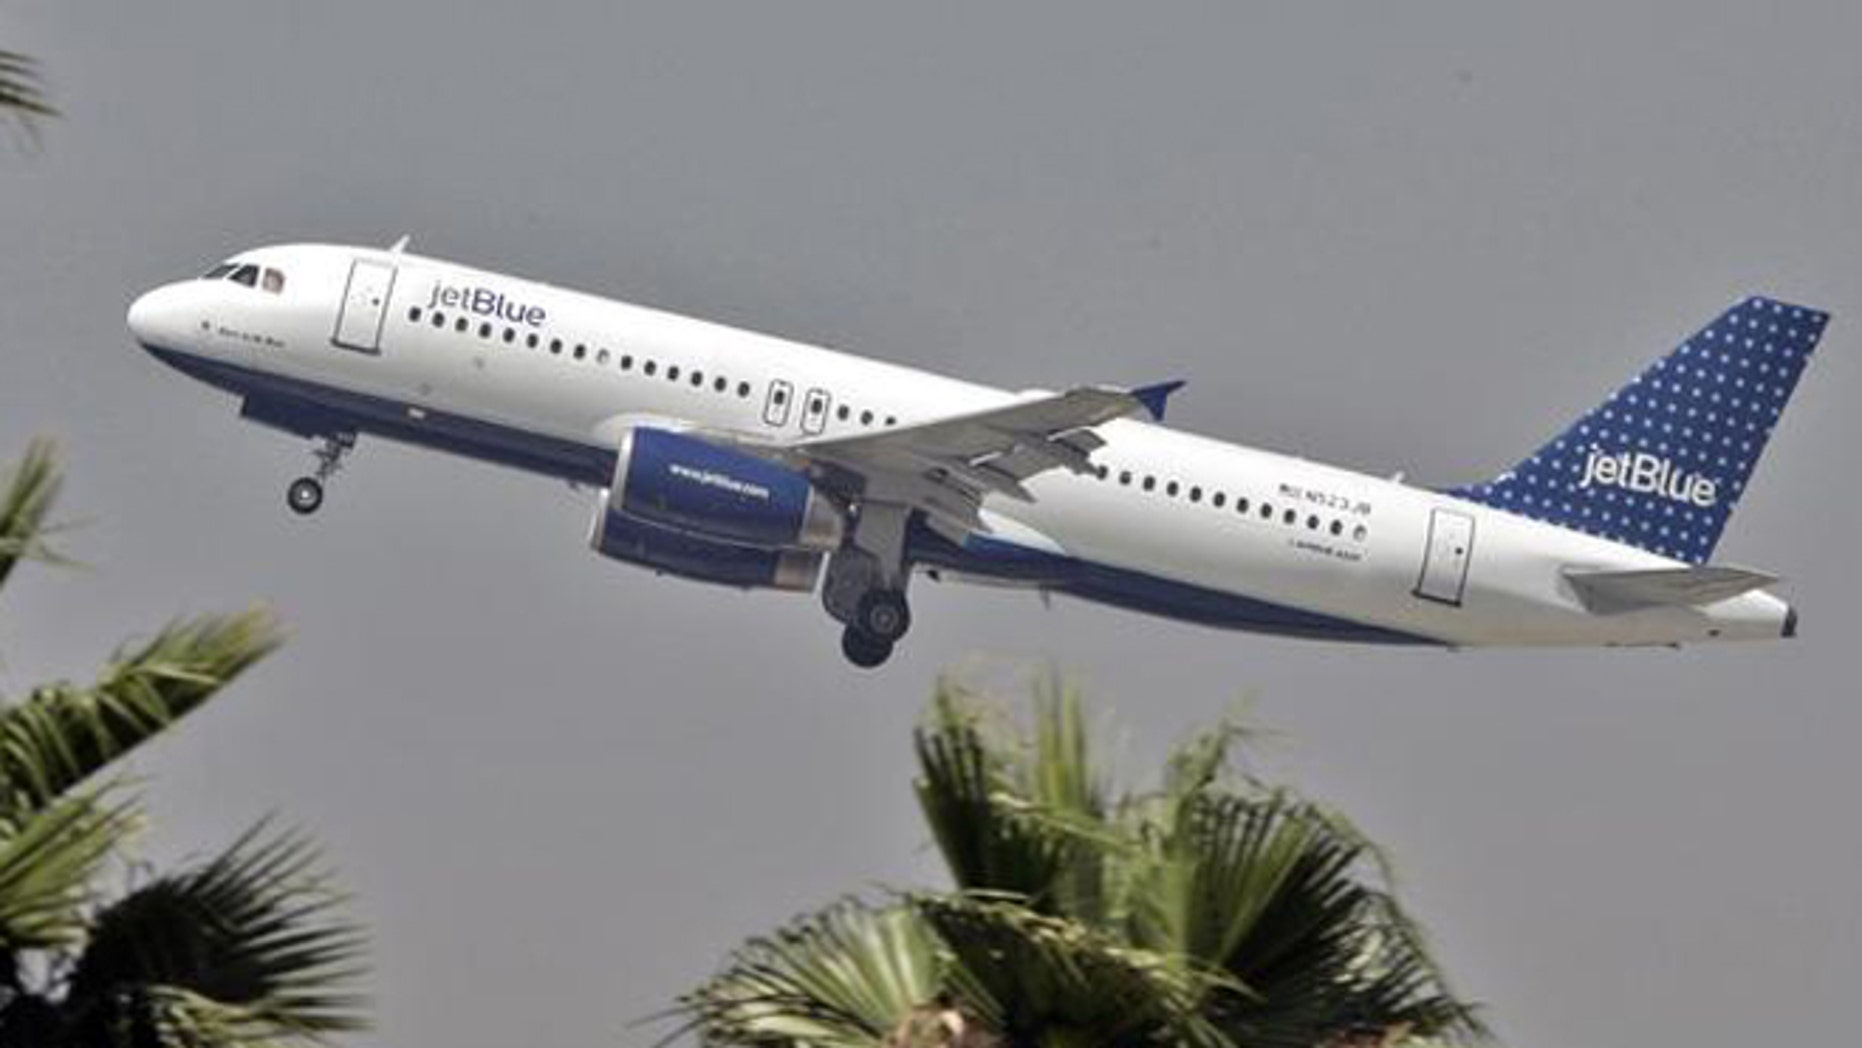 The FBI said a Jetblue flight was targeted by a laser in December 2013, temporarily blinding the pilot.